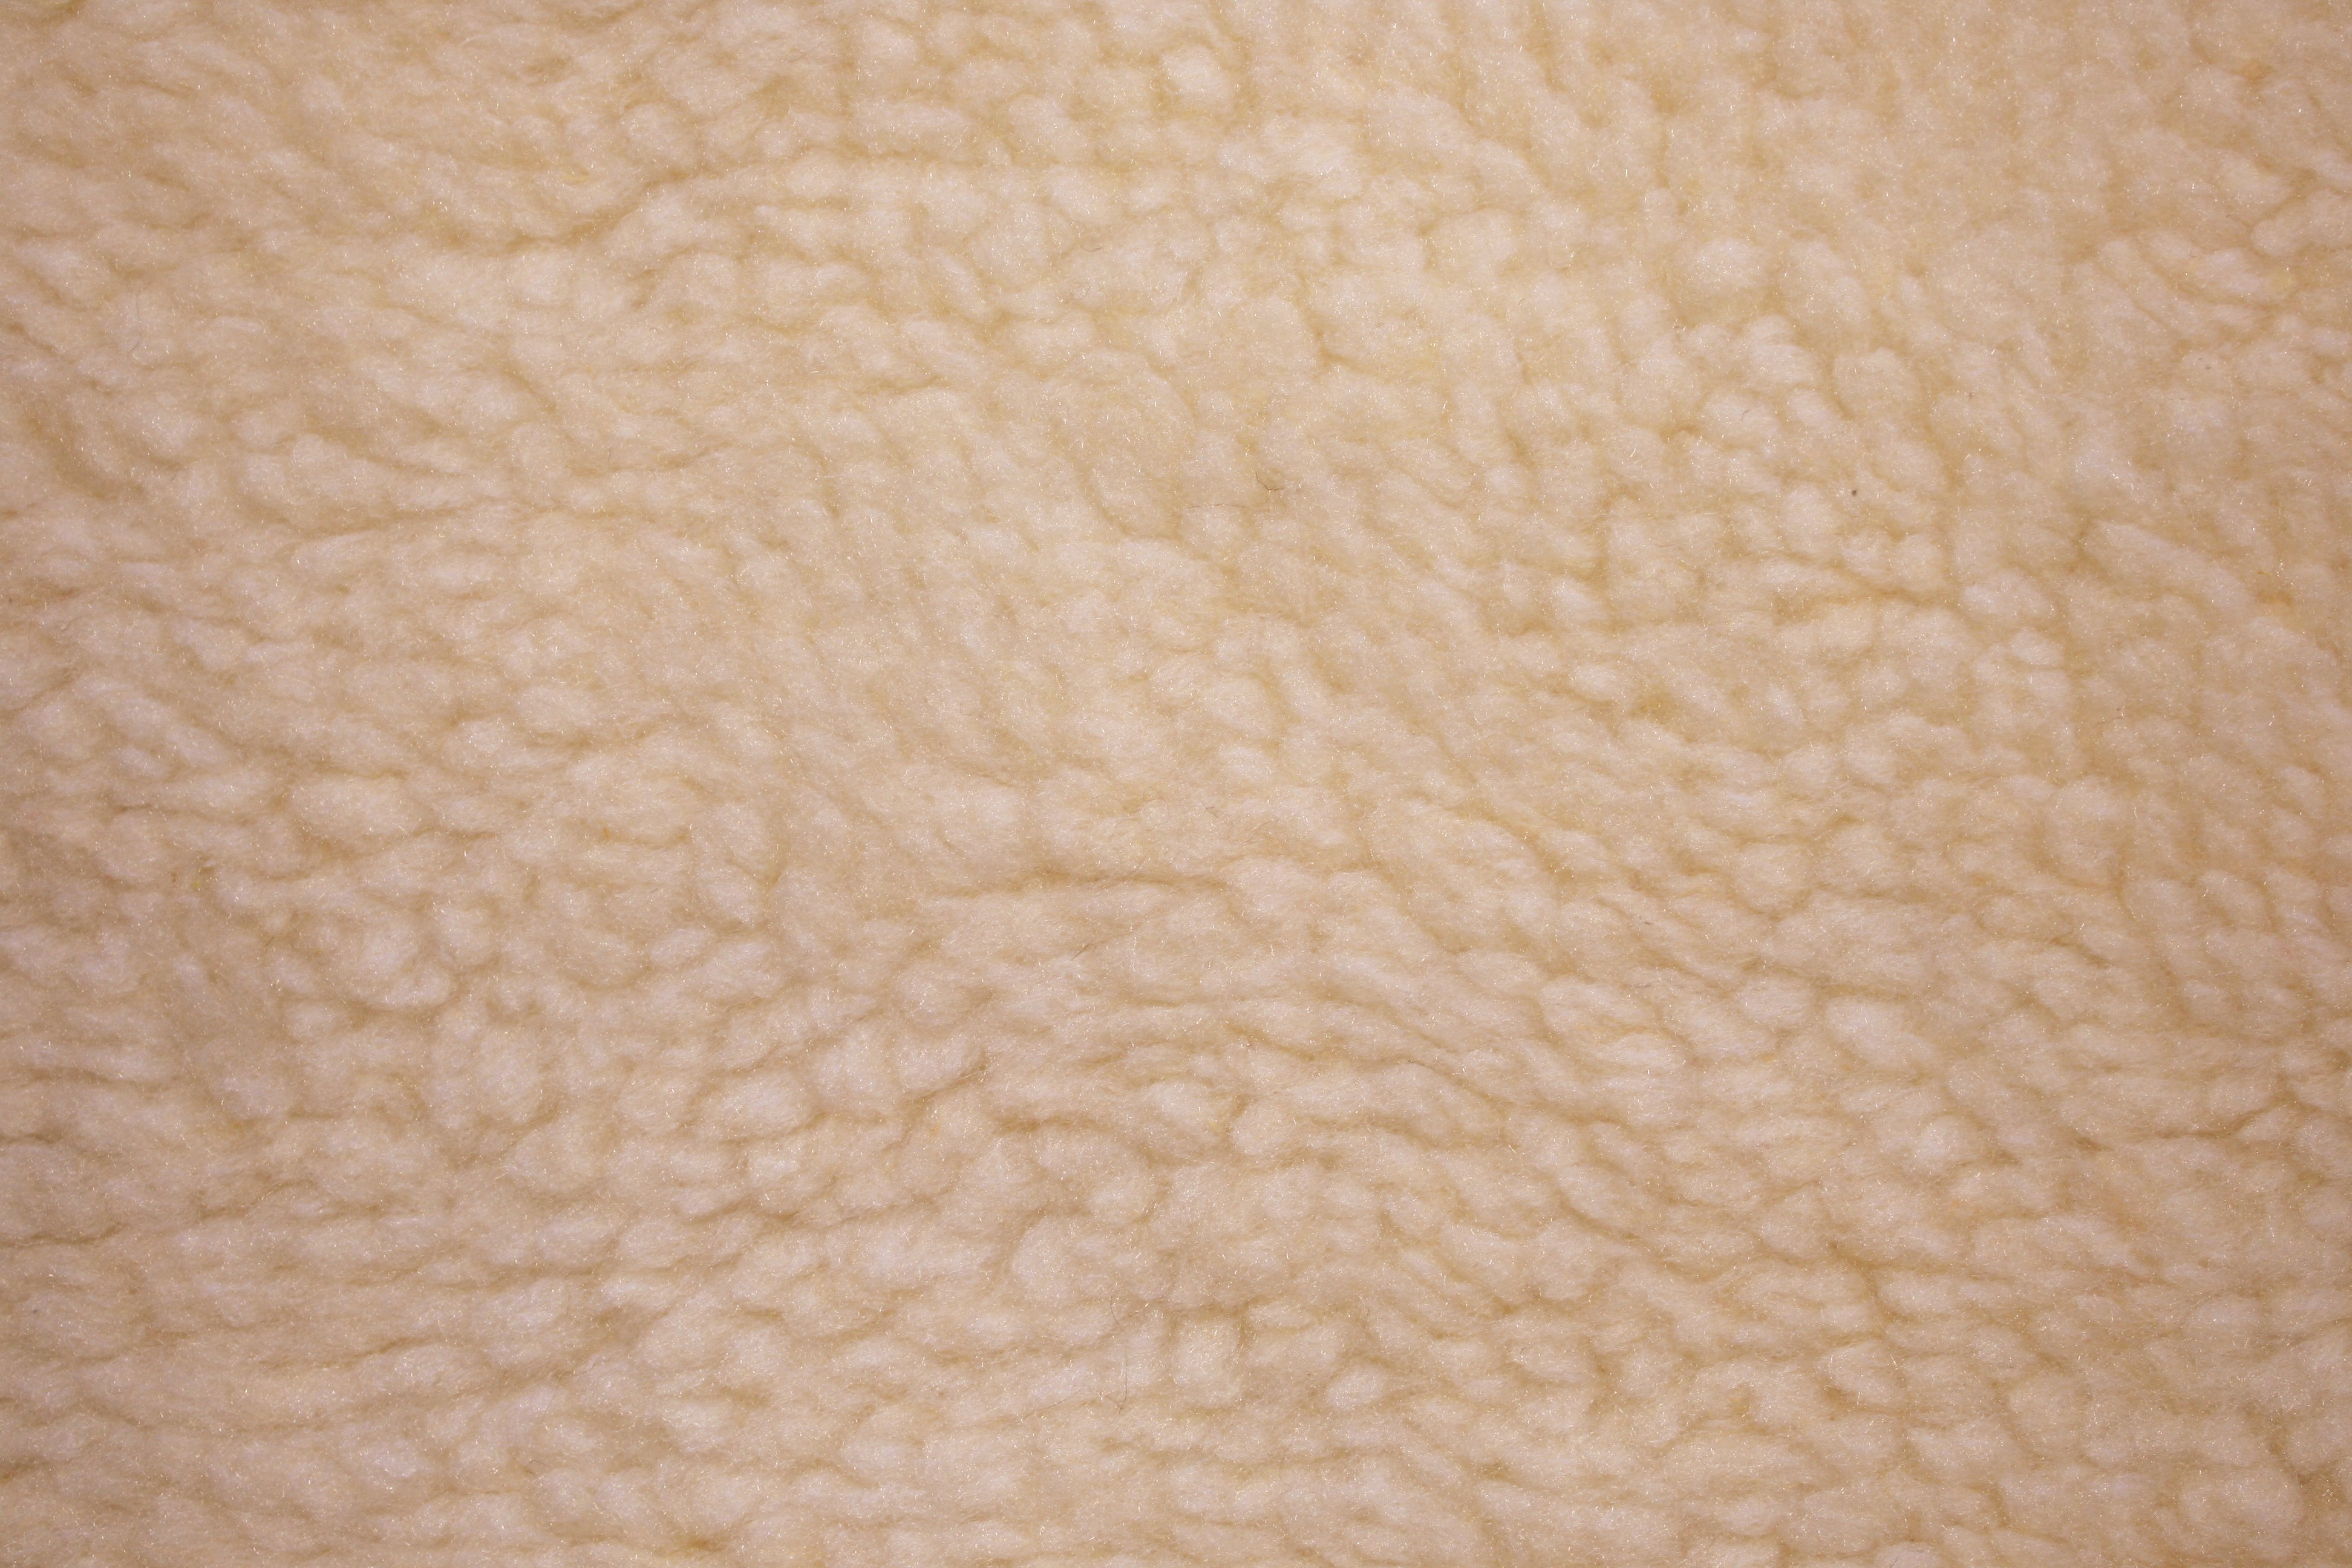 Wool Fabric Texture | Blog® Batik